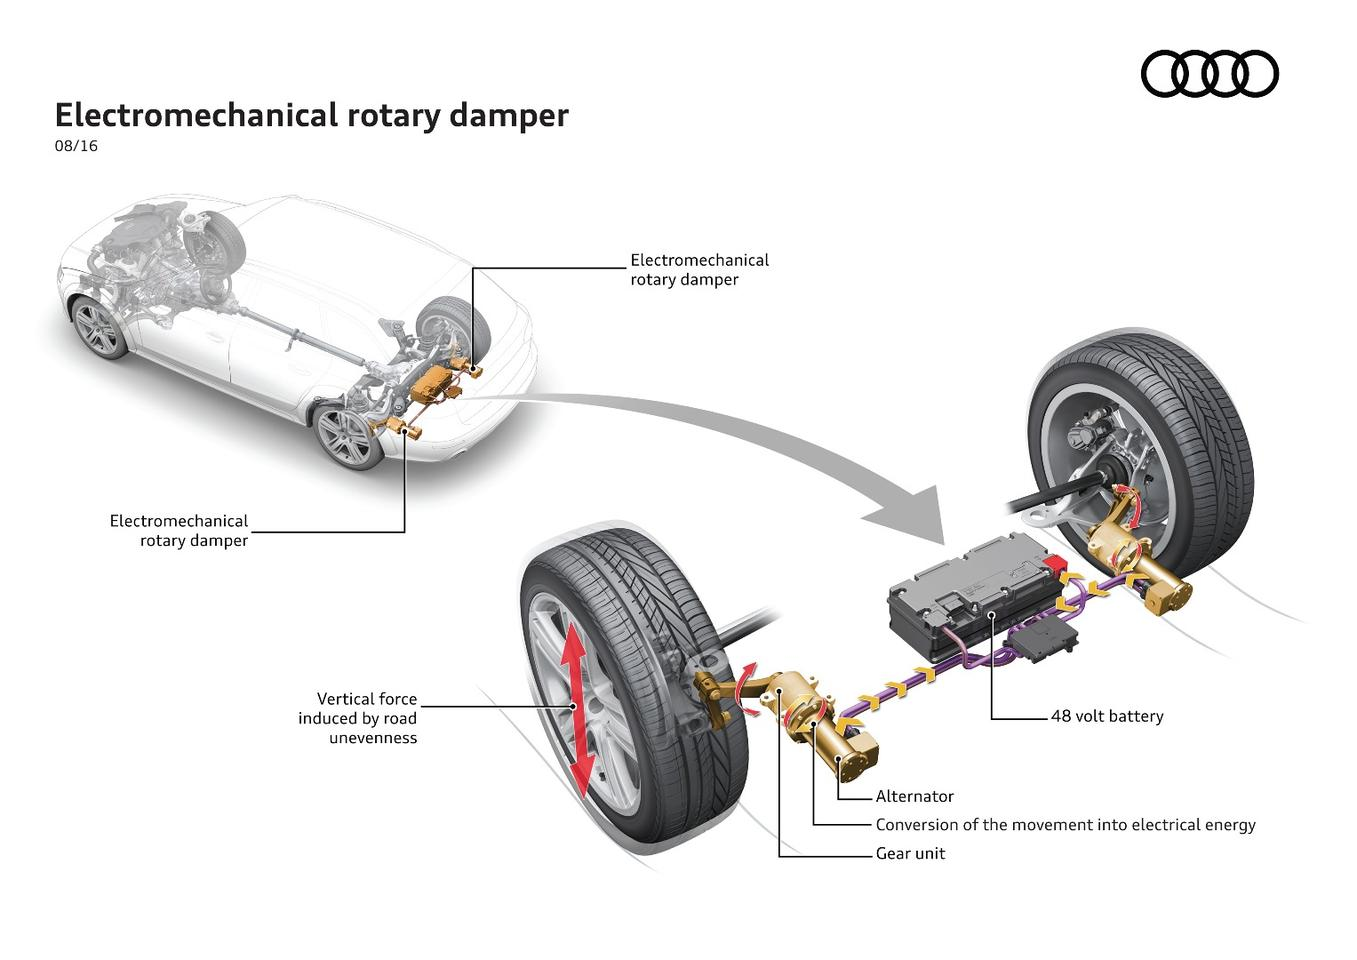 A look at how Audi's eROT system works